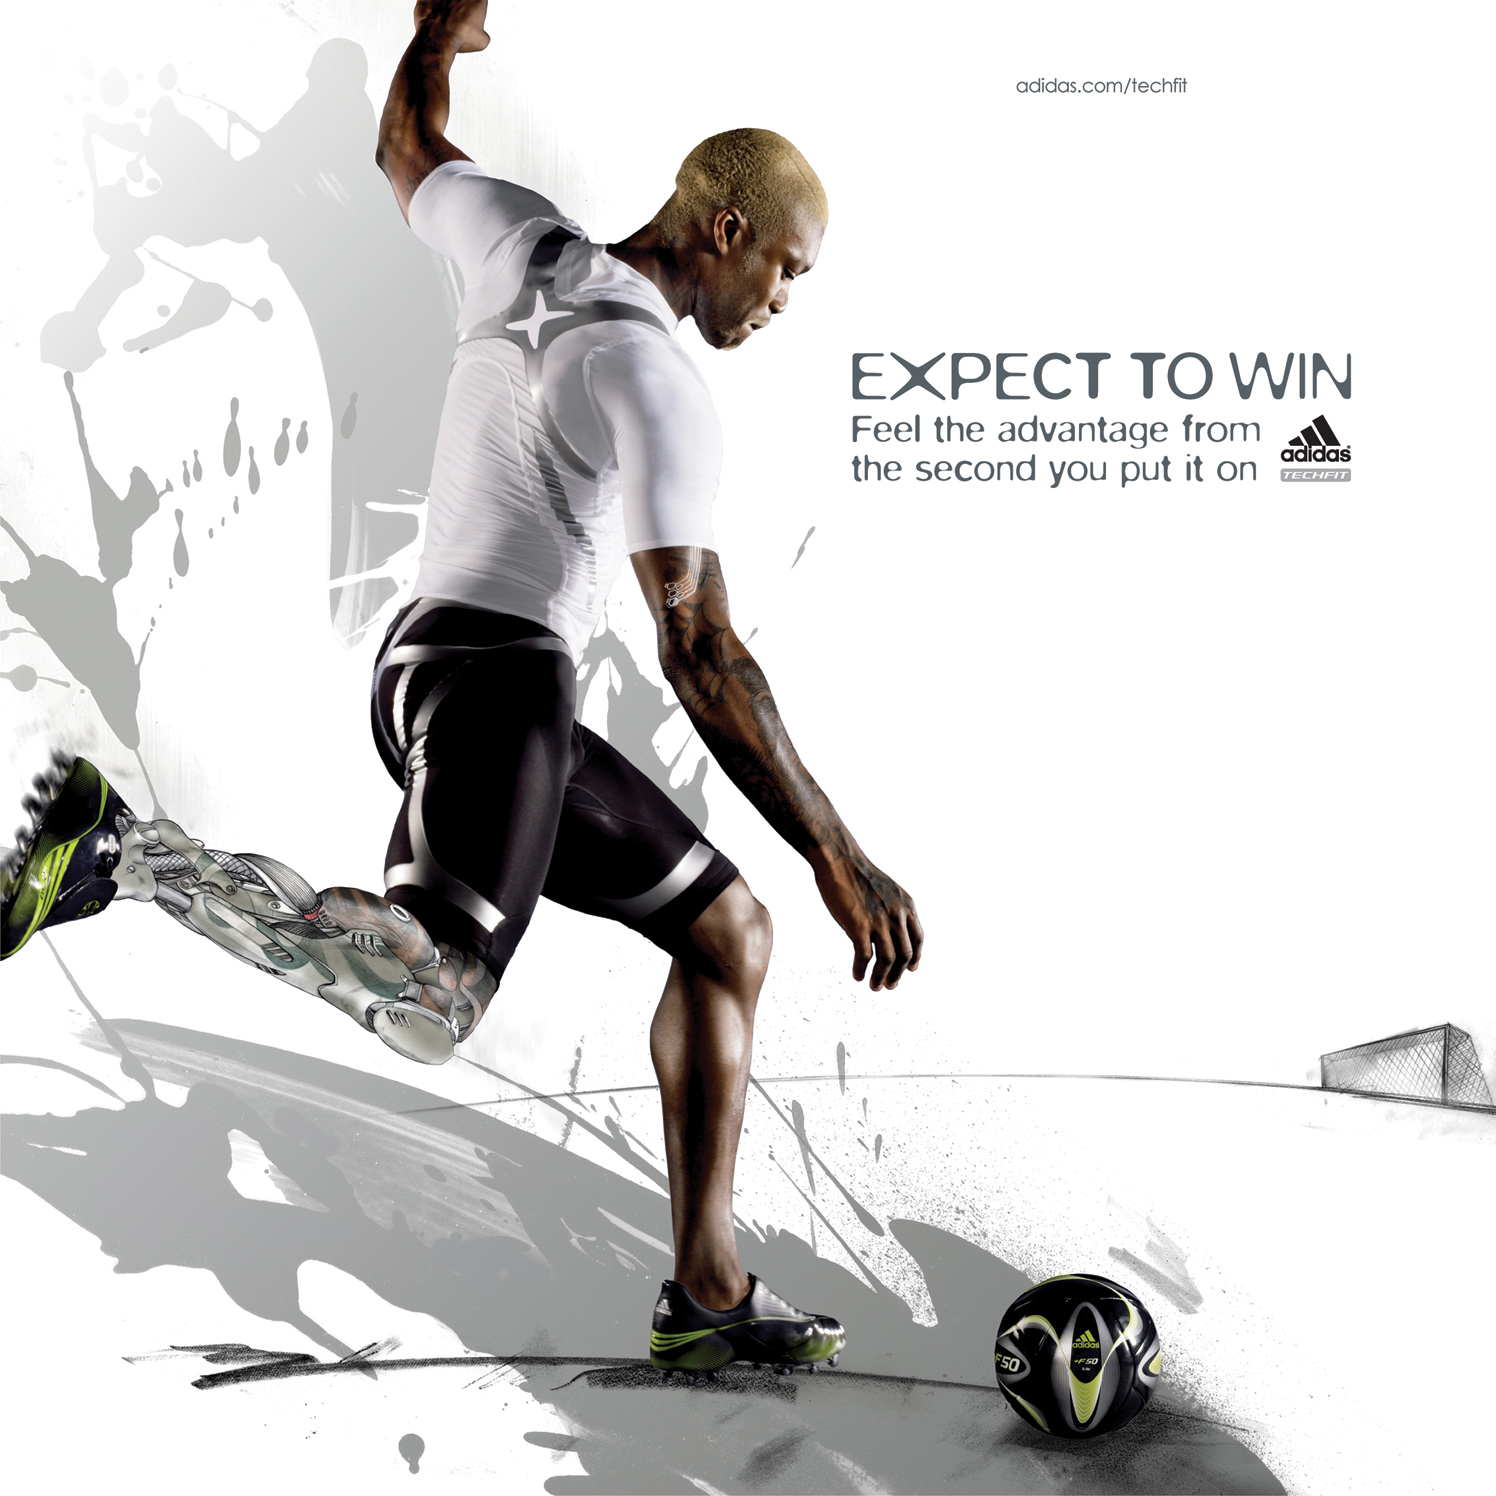 Adidas Believe Expect To Win